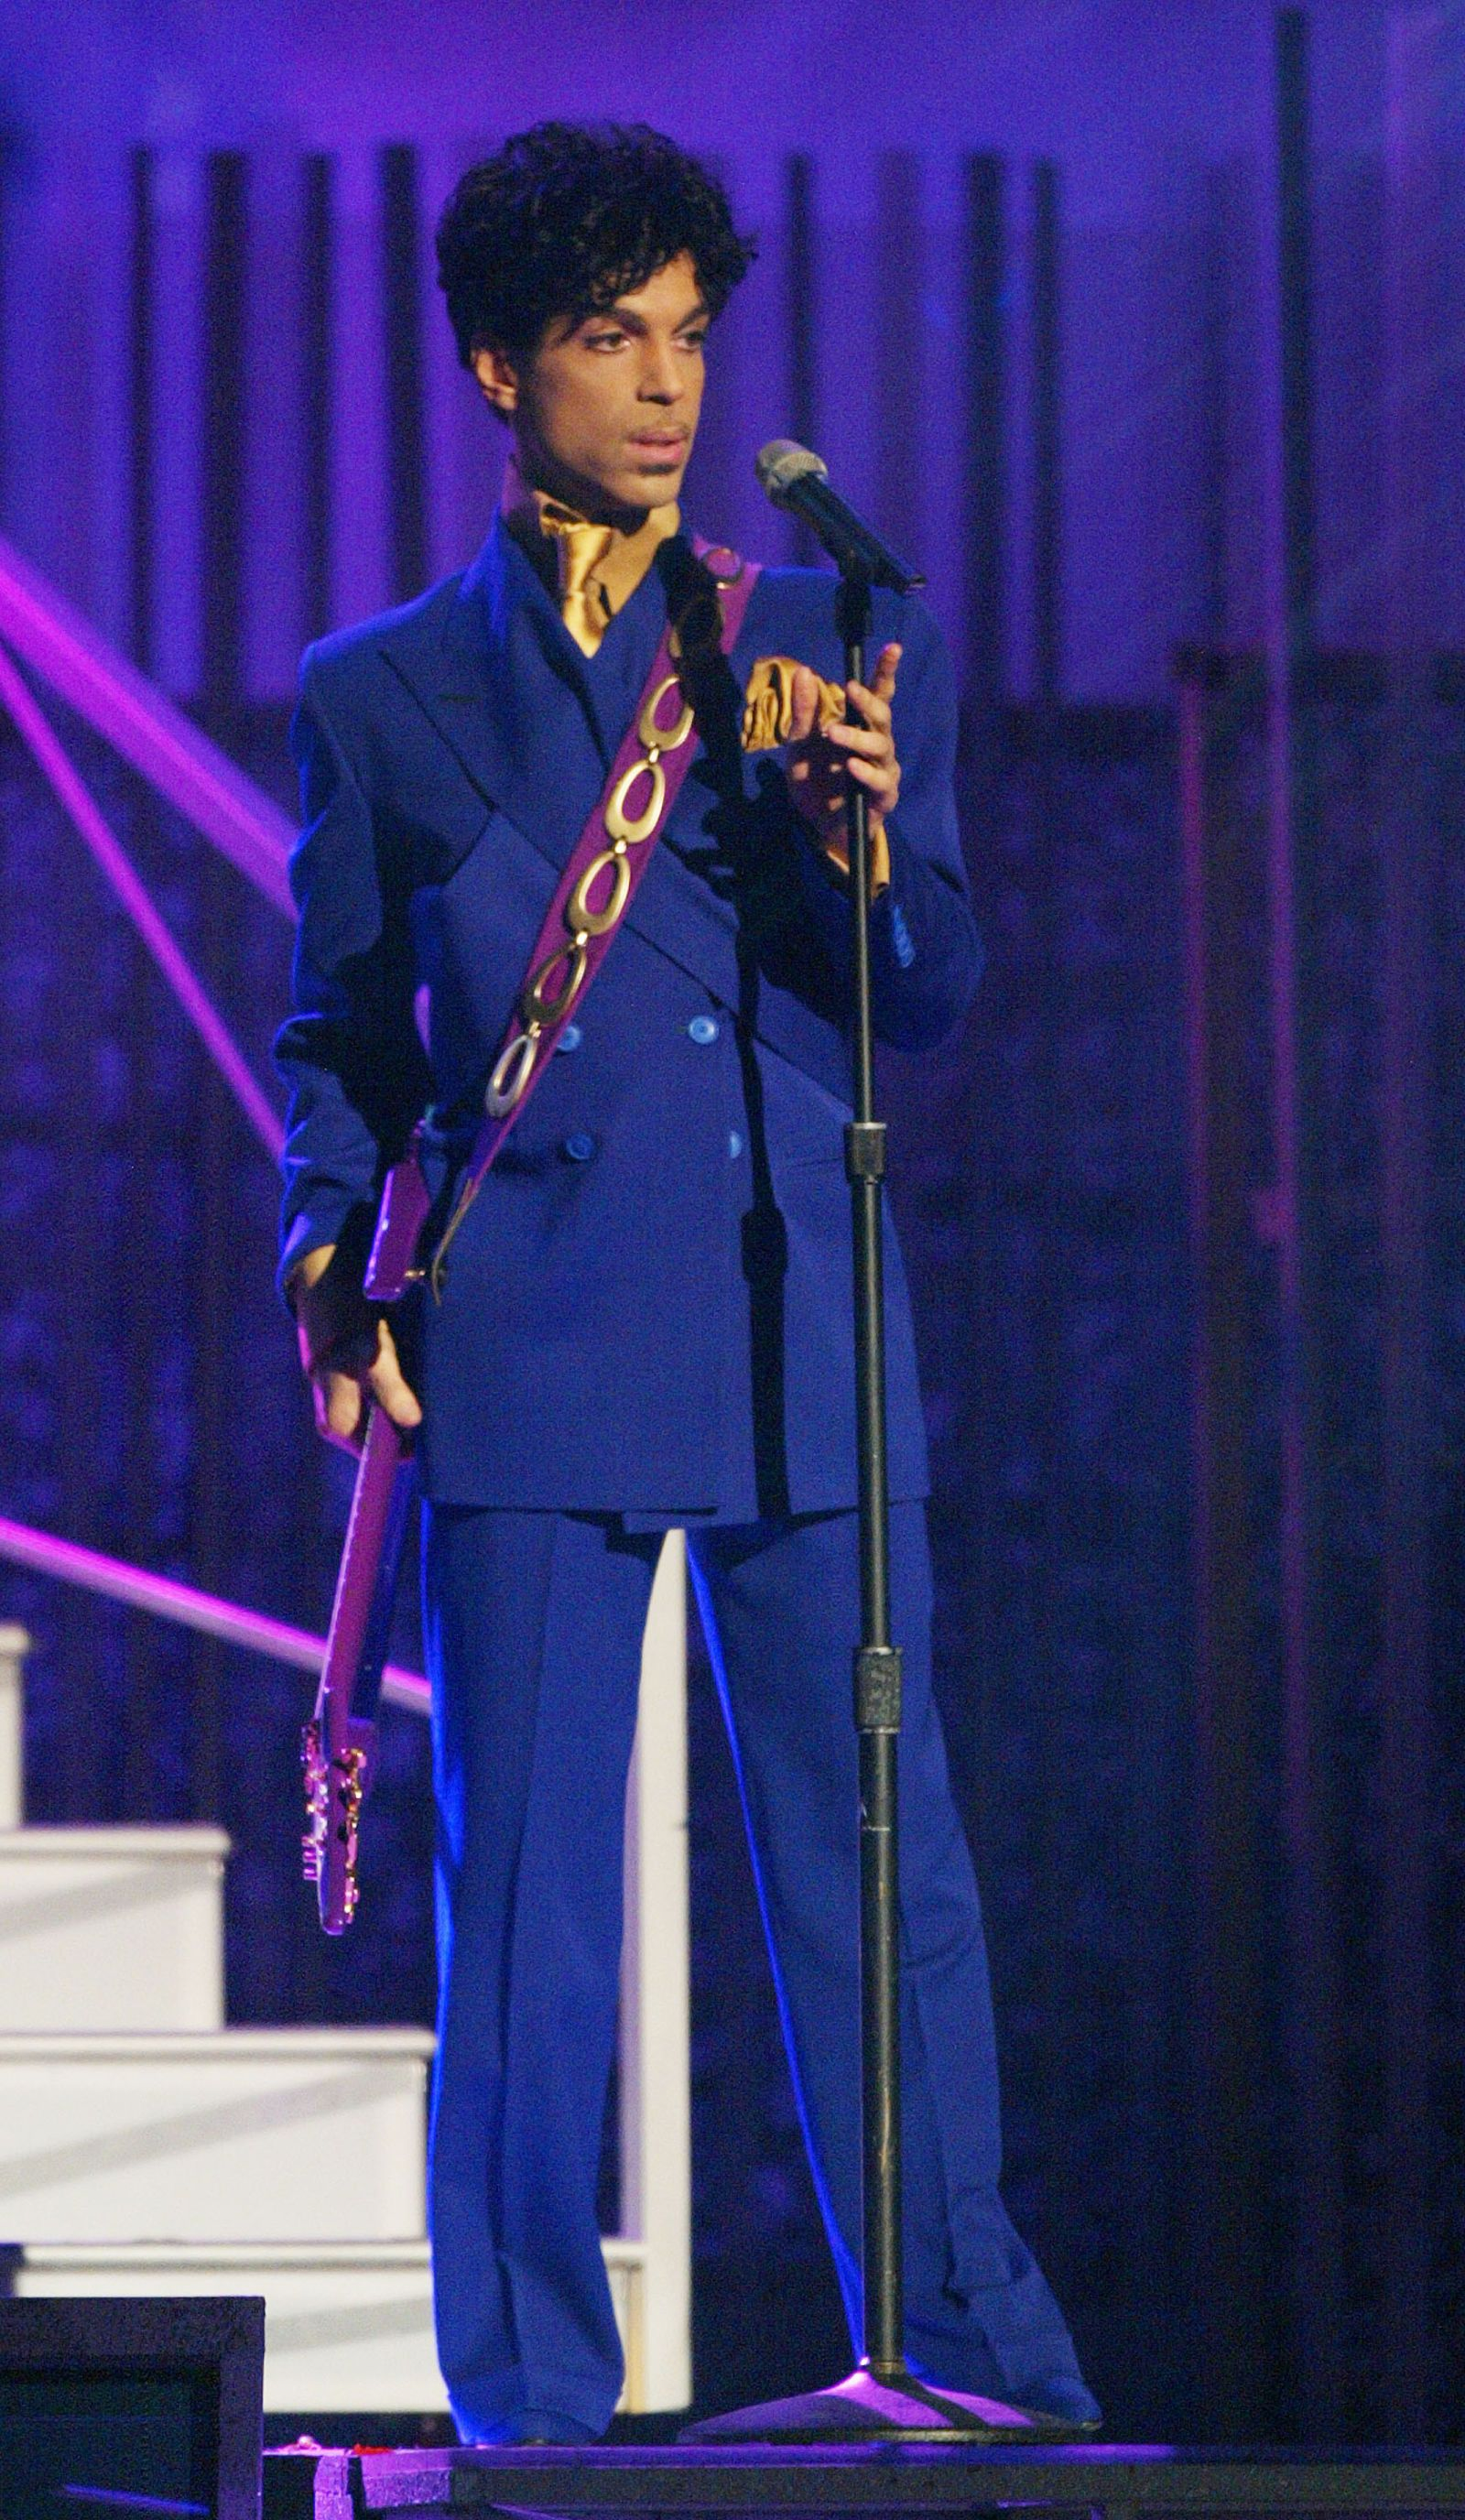 Prince at the 46th Annual Grammy Awards in 2004.